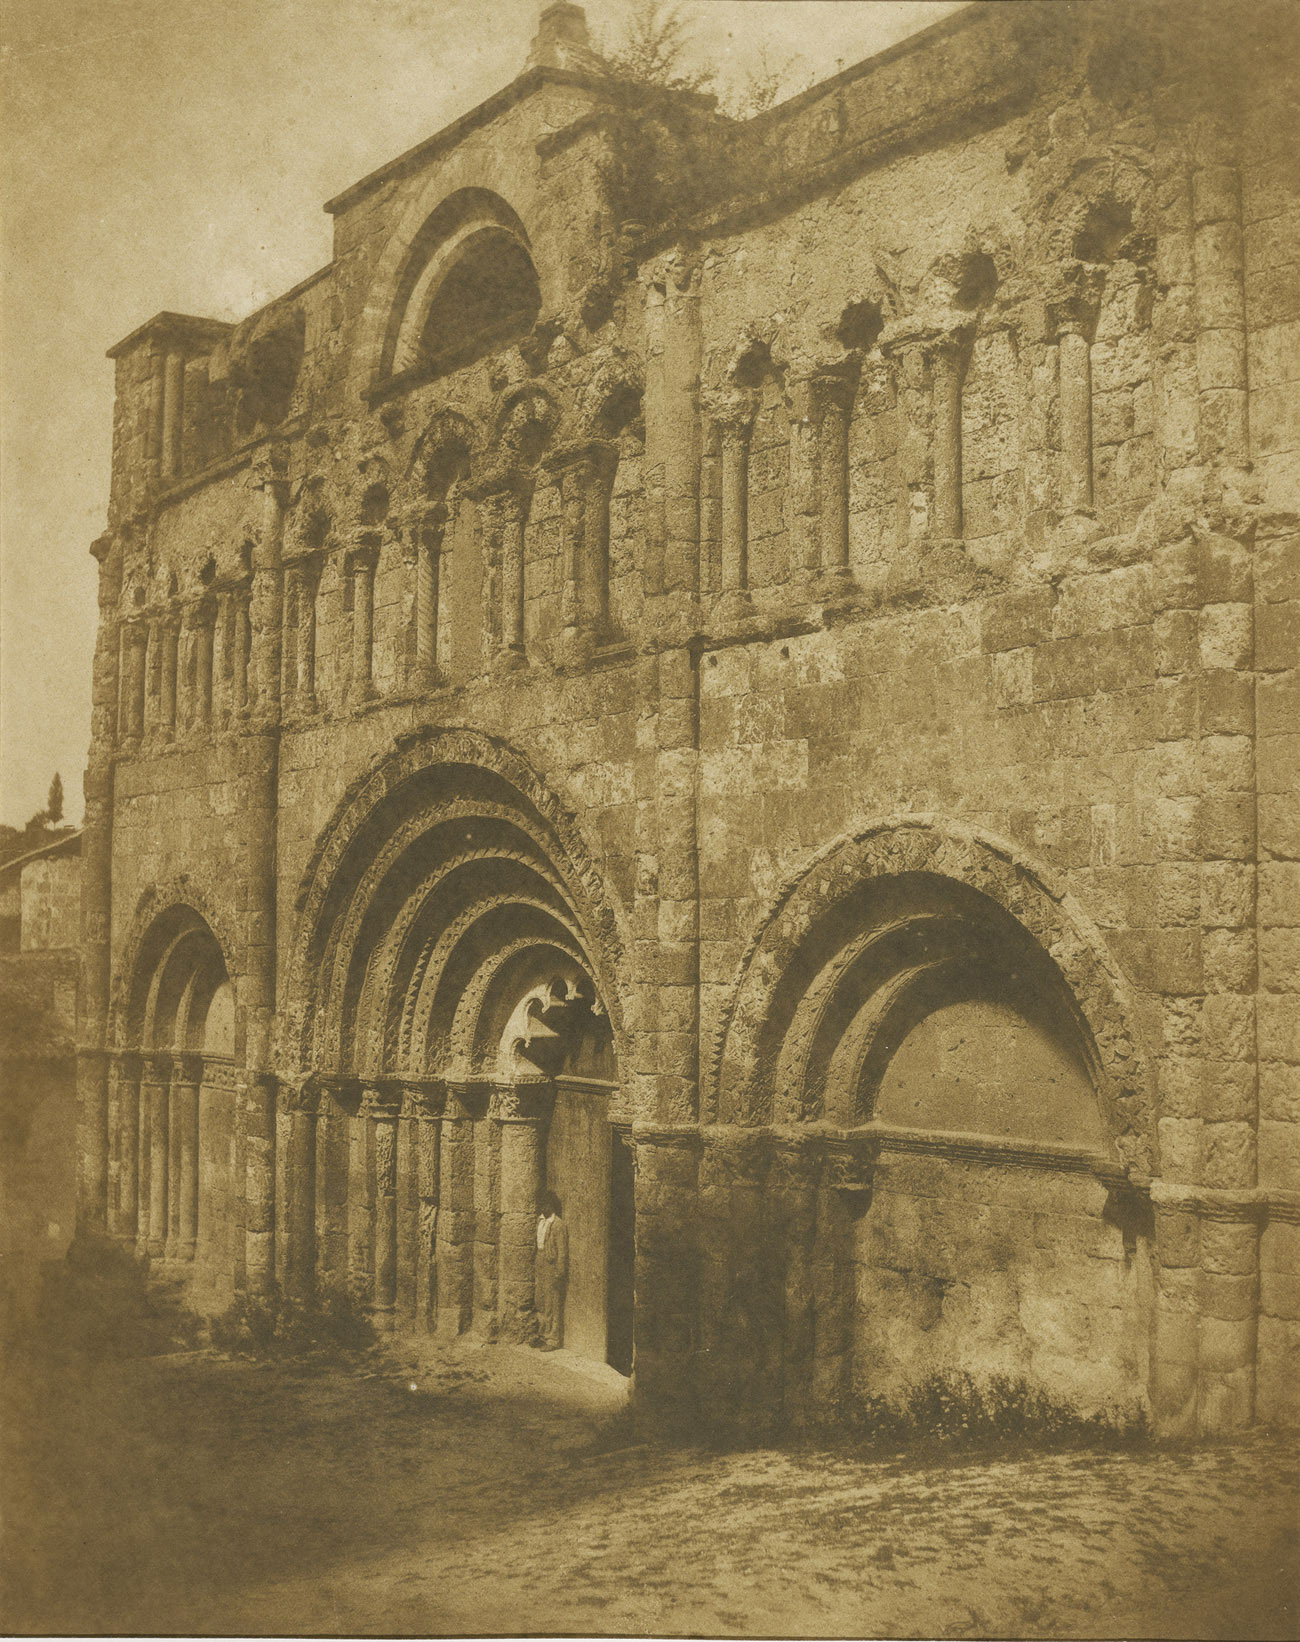 West Facade of the Church of Saint-Jacques, Aubeterre-sur-Dronne / Le Gray & Mestral